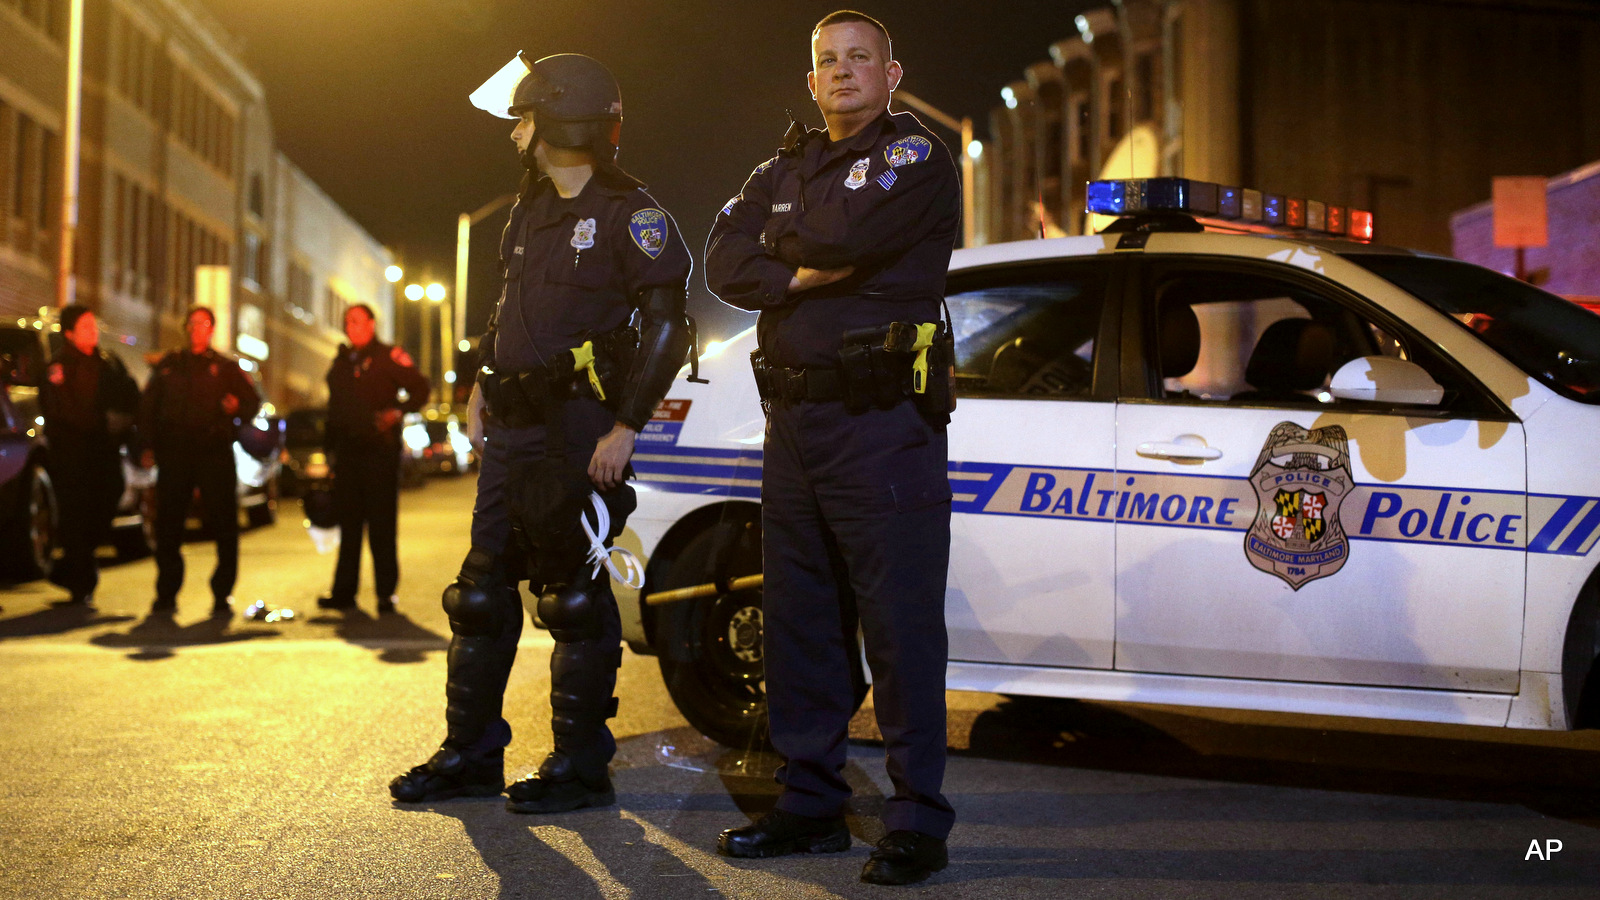 Police Officer Wallpaper Hd 6 Baltimore Police Officers Charged In Freddie Gray S Death